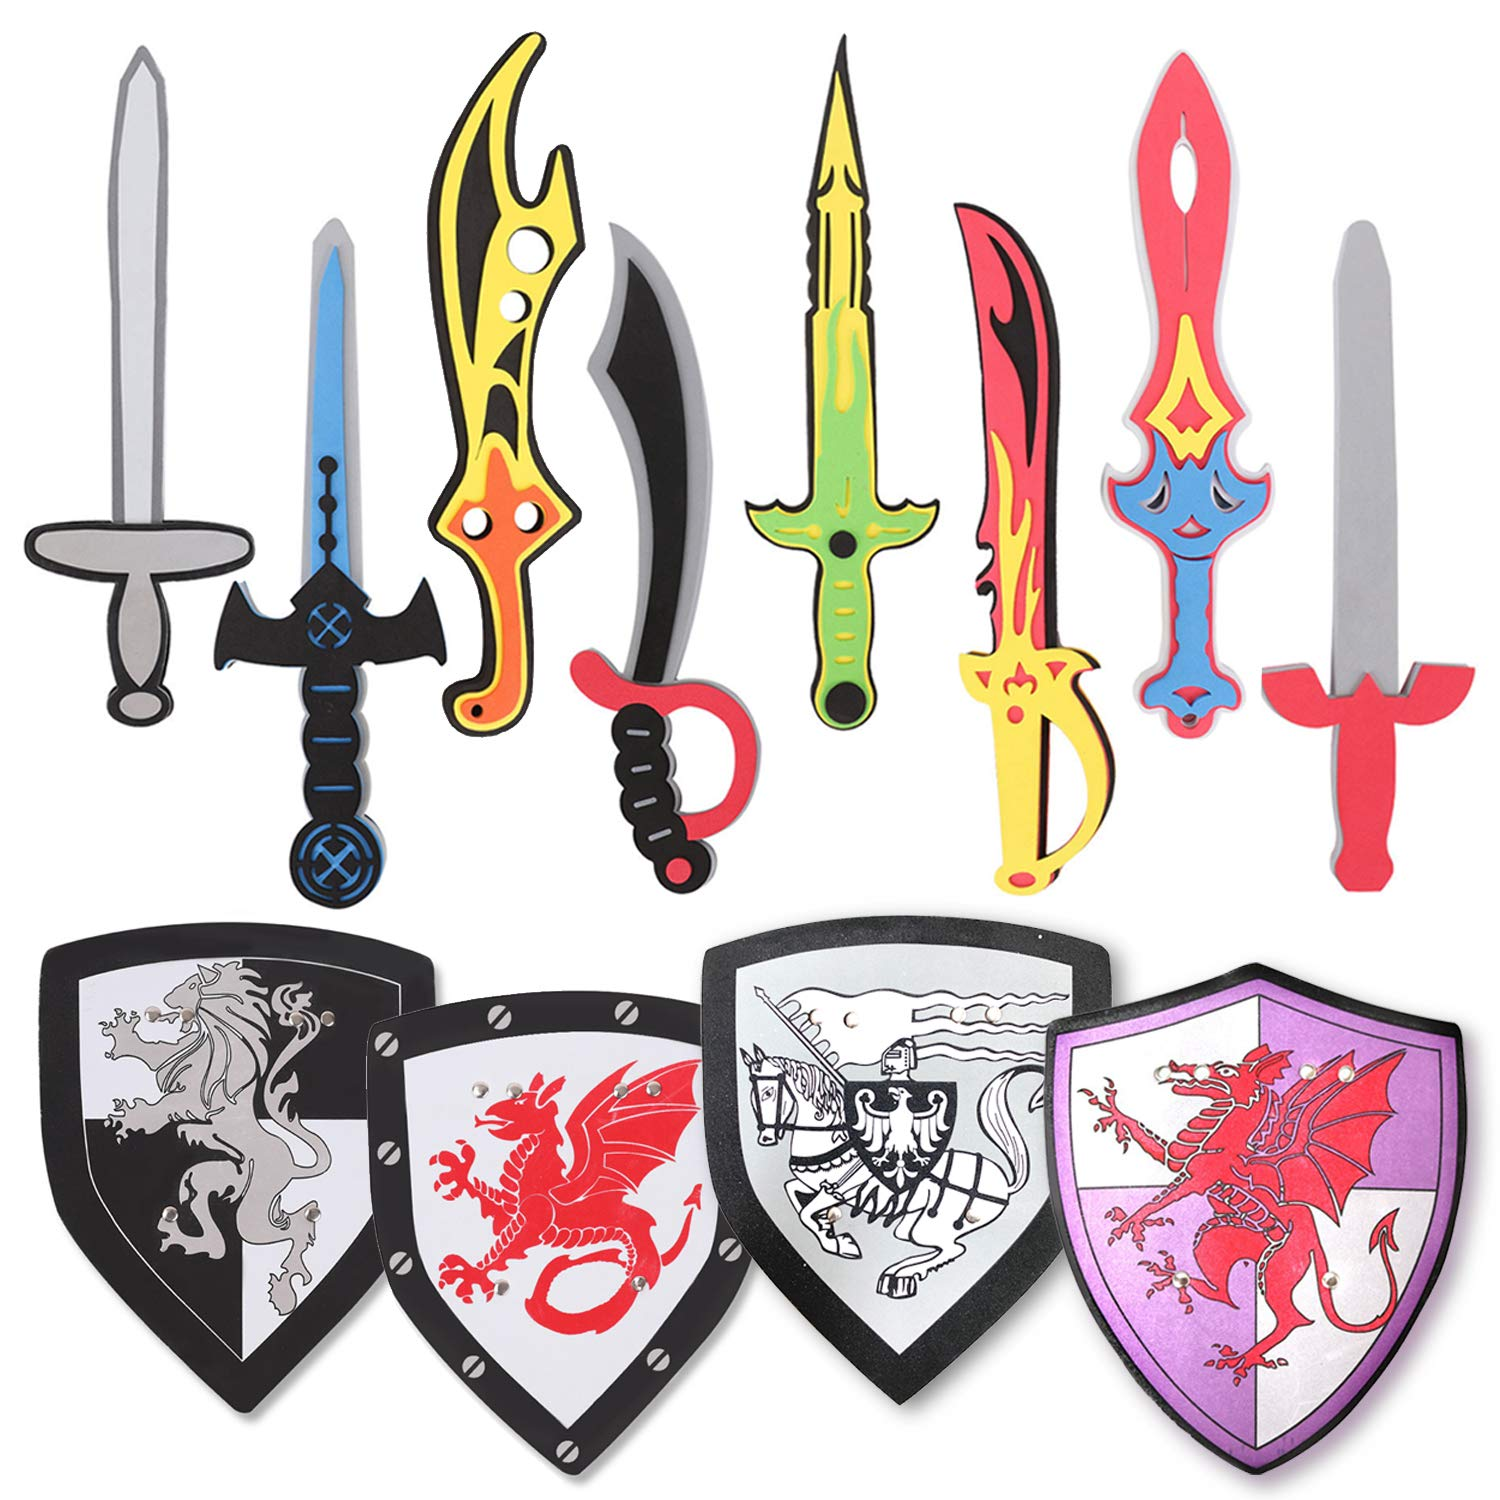 Pack of 12 Foam Swords and Shields Playset, Medieval Combat Ninja Warrior Weapons Costume Role Play Accessories for Kids Party Favors